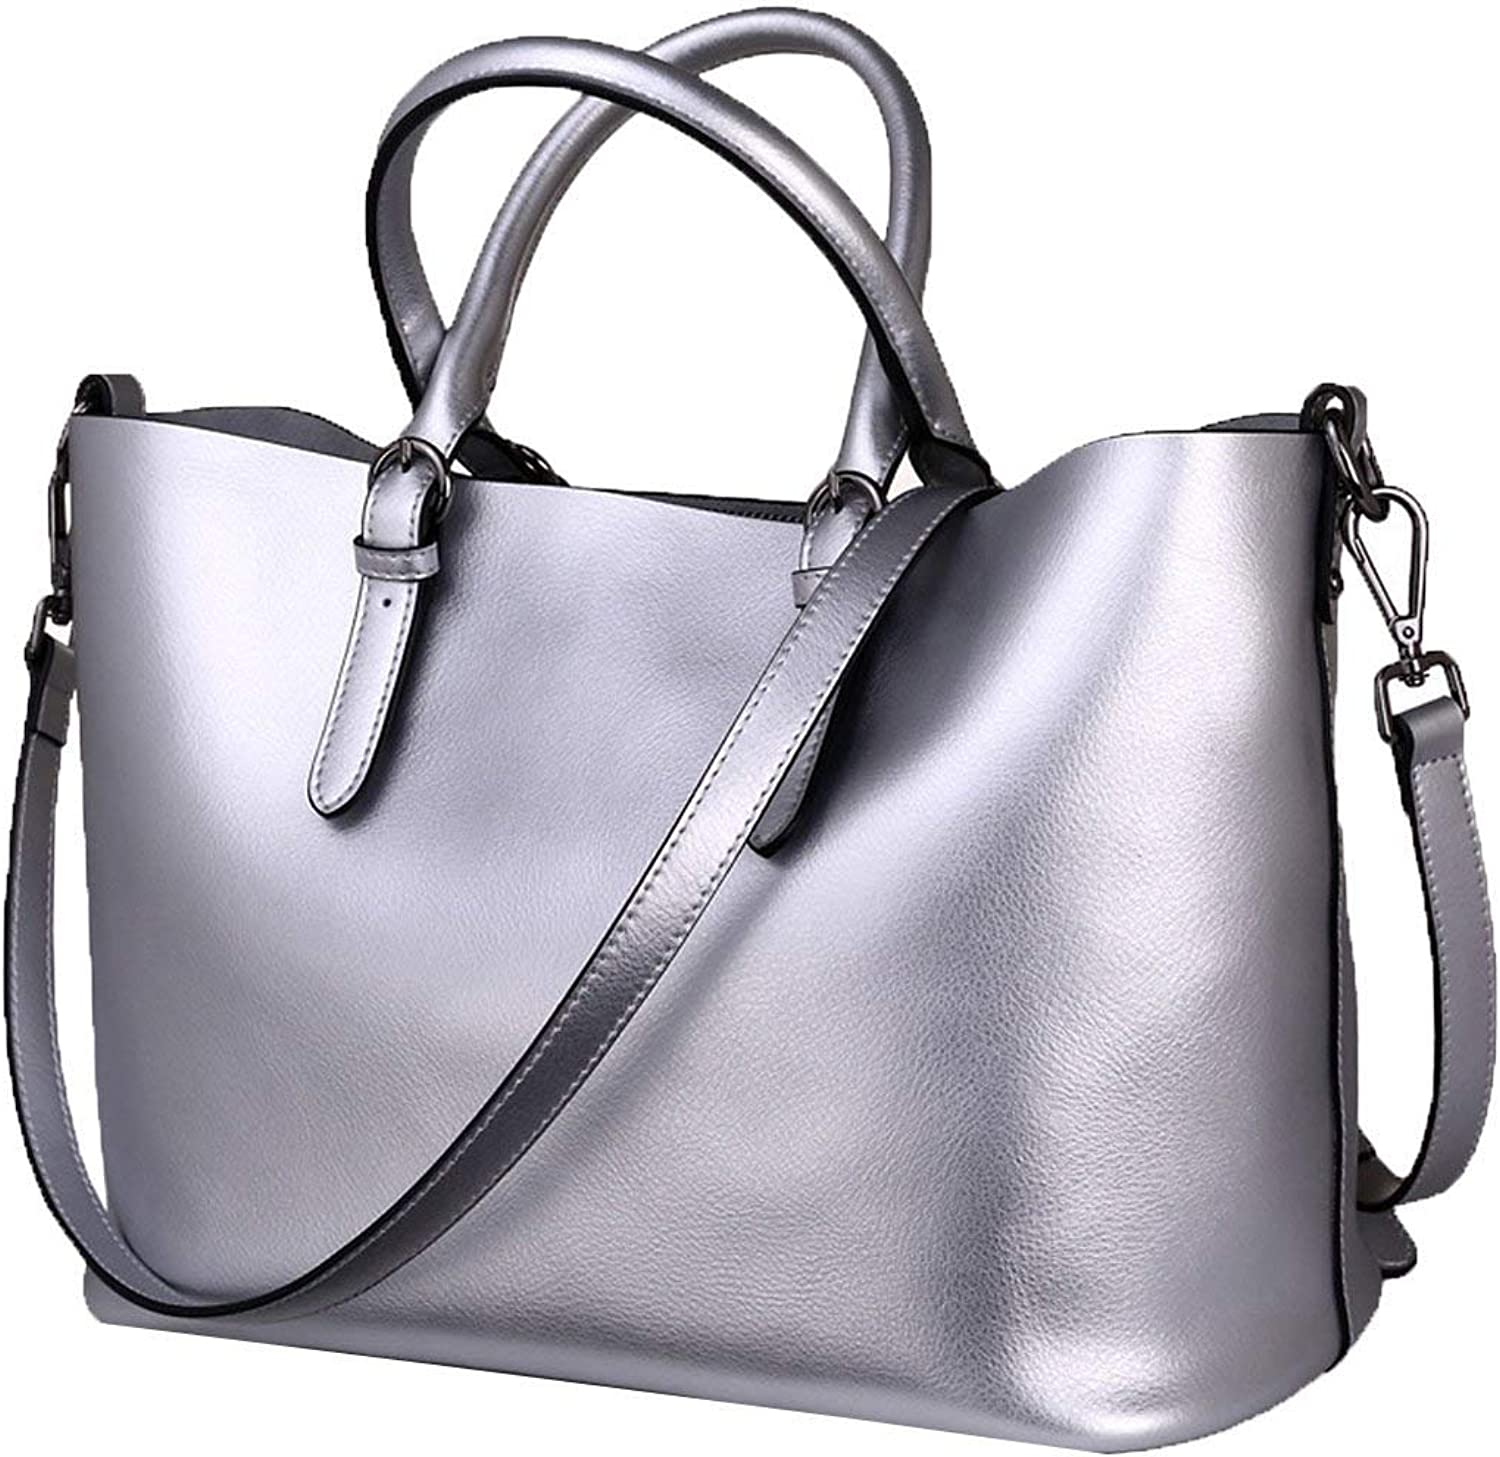 Evening Bag Women Fashion Genuine Leather Shoulder Bag Lady Casual Handbag Top Handle Satcel Tote Bag Multicolor Party Handbag (color   Silver, Size   Medium)